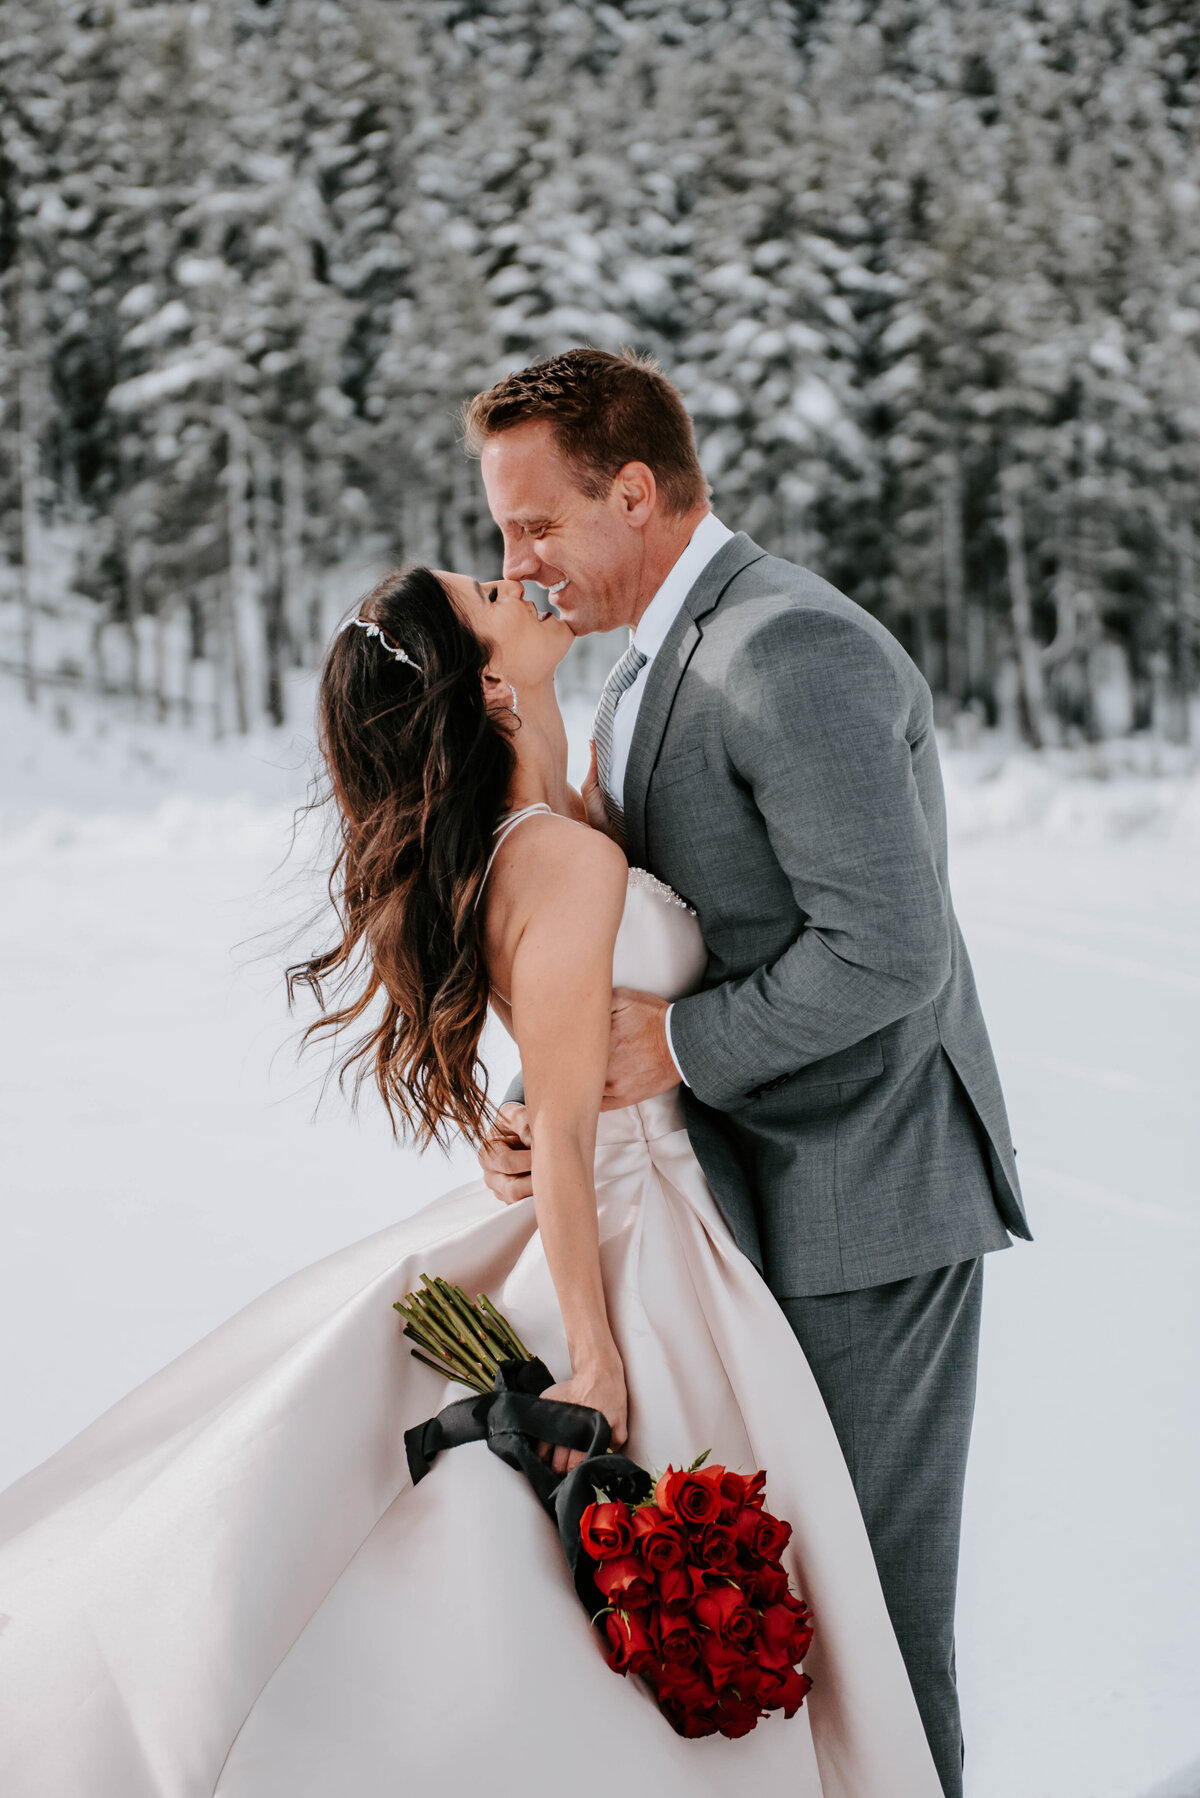 mt-bachelor-snow-winter-elopement-bend-oregon-wedding-photographer-2122